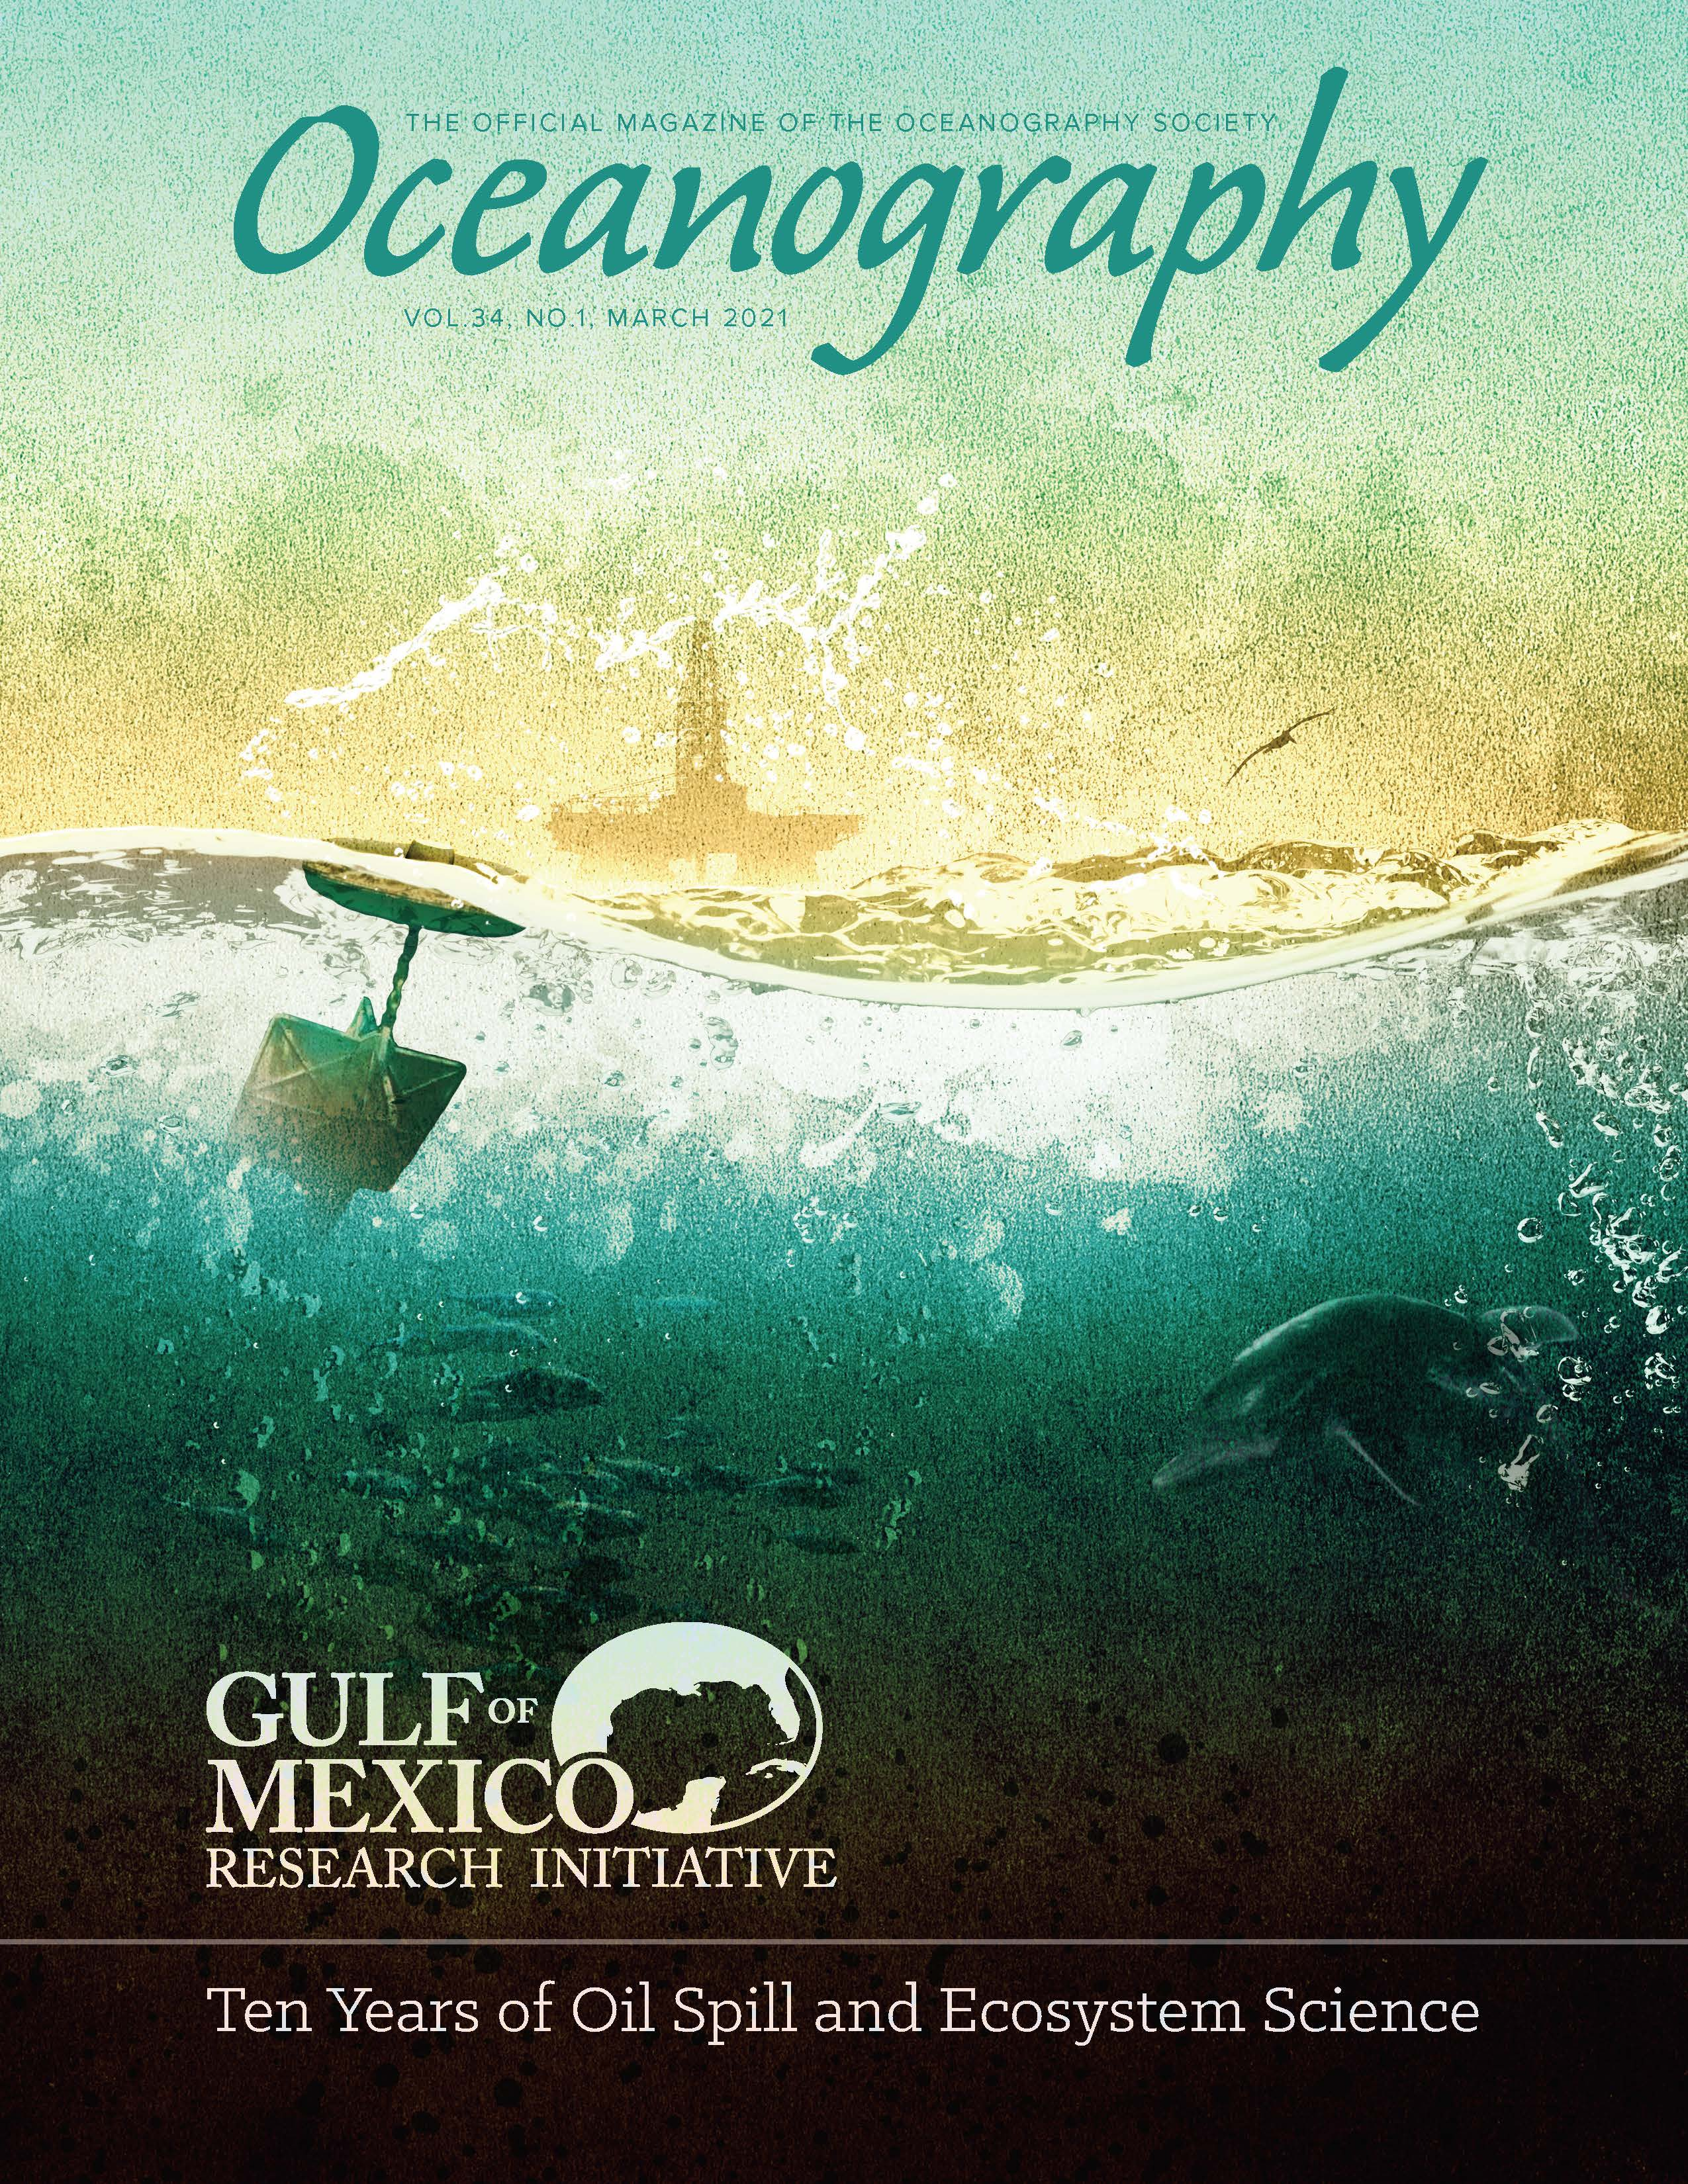 Special Issue of Oceanography magazine